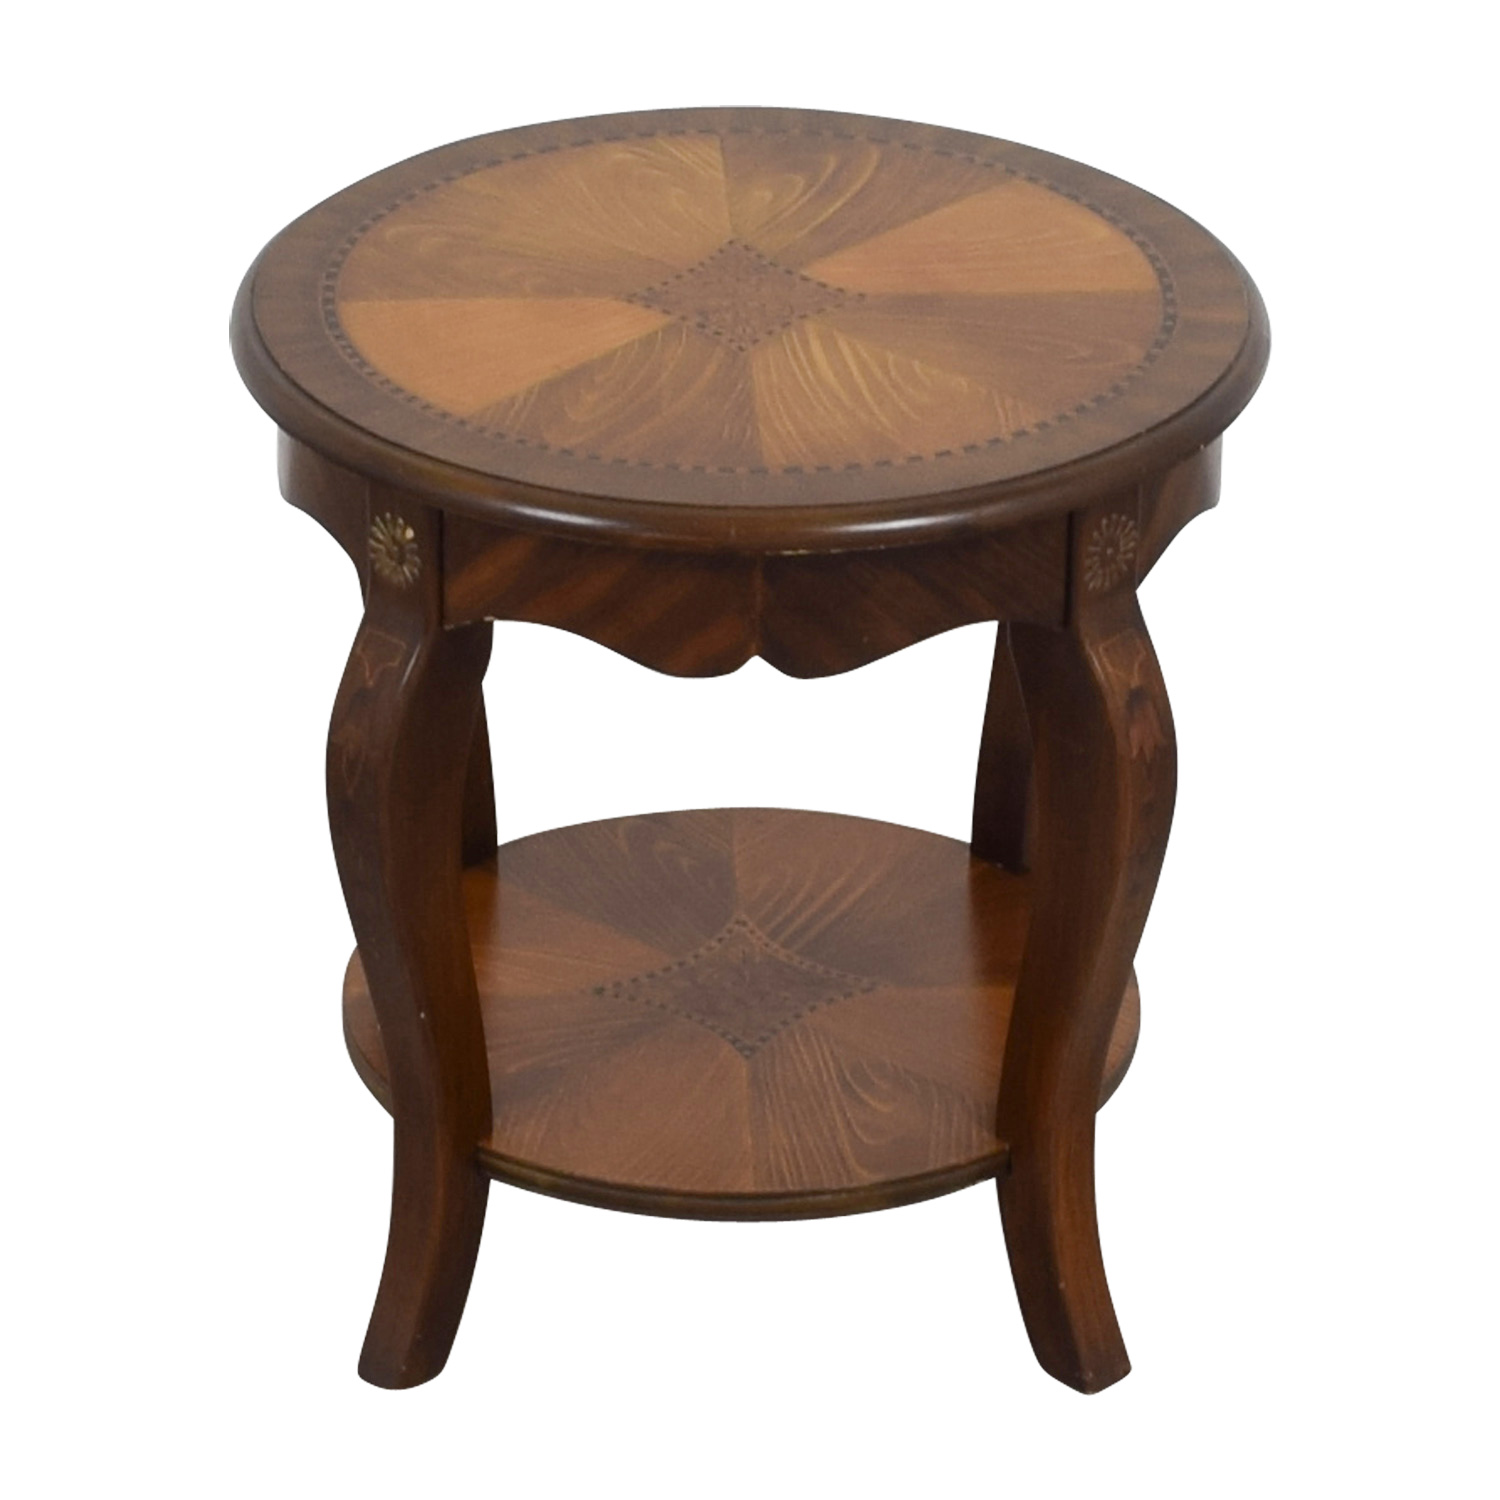 Painted Multi-Wood Side Table for sale